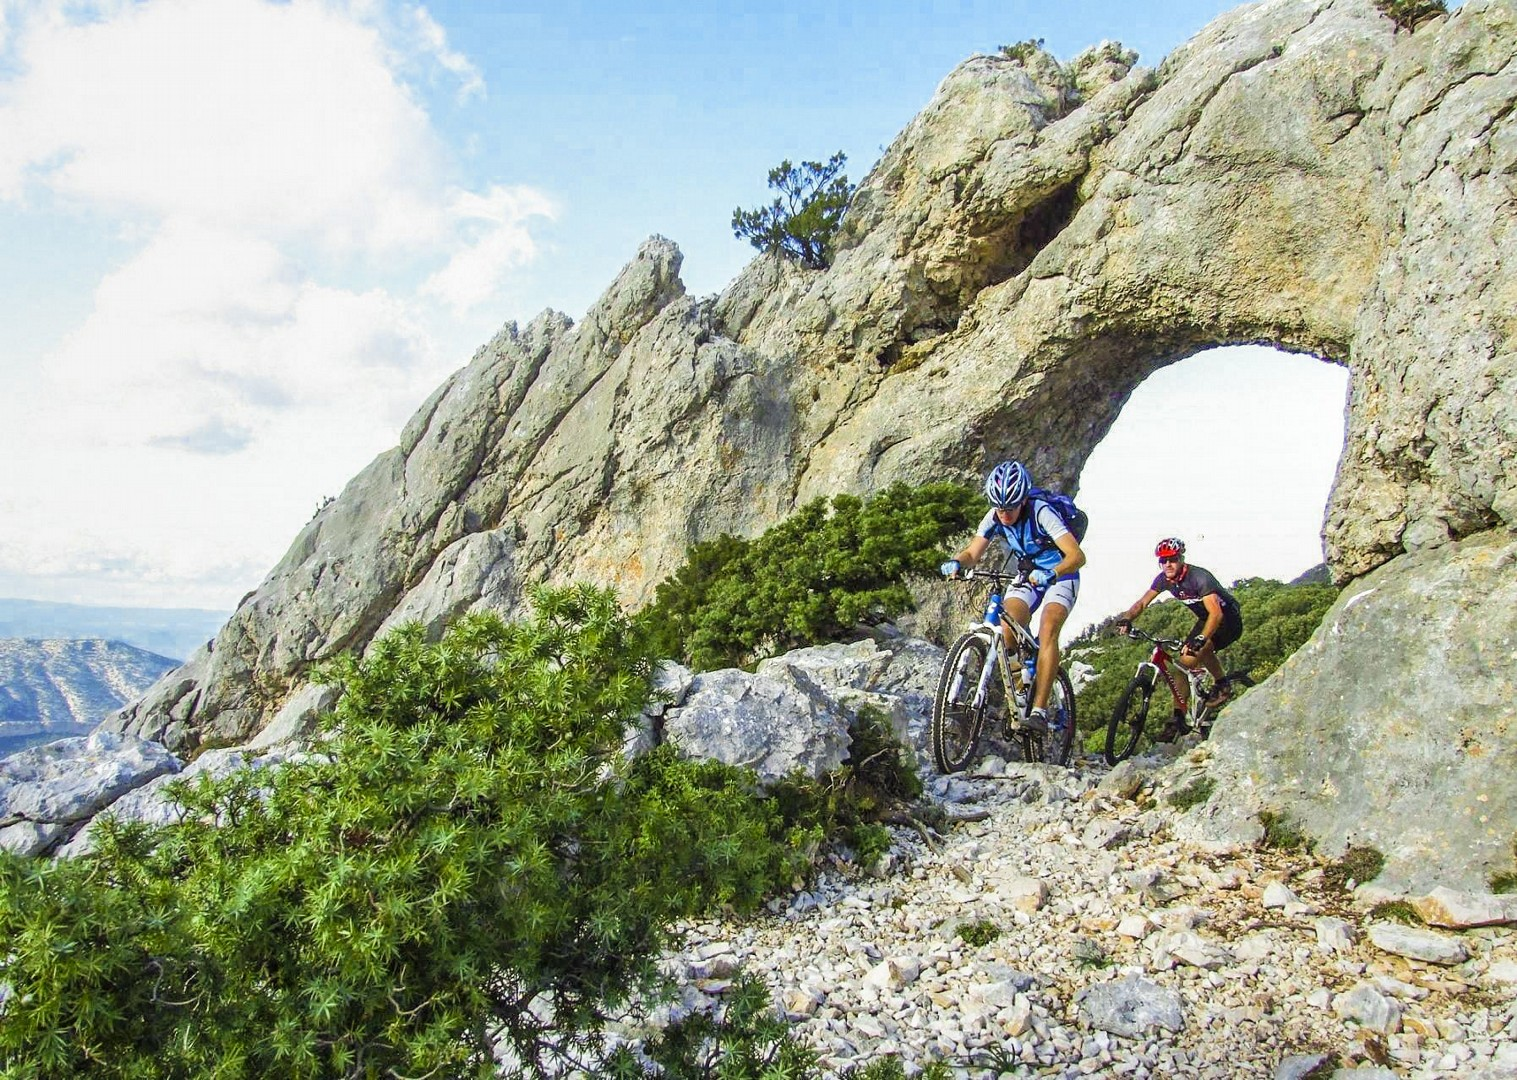 mountain-biking-in-sardinia-italy-saddle-skeaddle-self-guided.jpg - Italy - Sardinia - Coast to Coast - Self-Guided Mountain Bike Holiday - Italia Mountain Biking